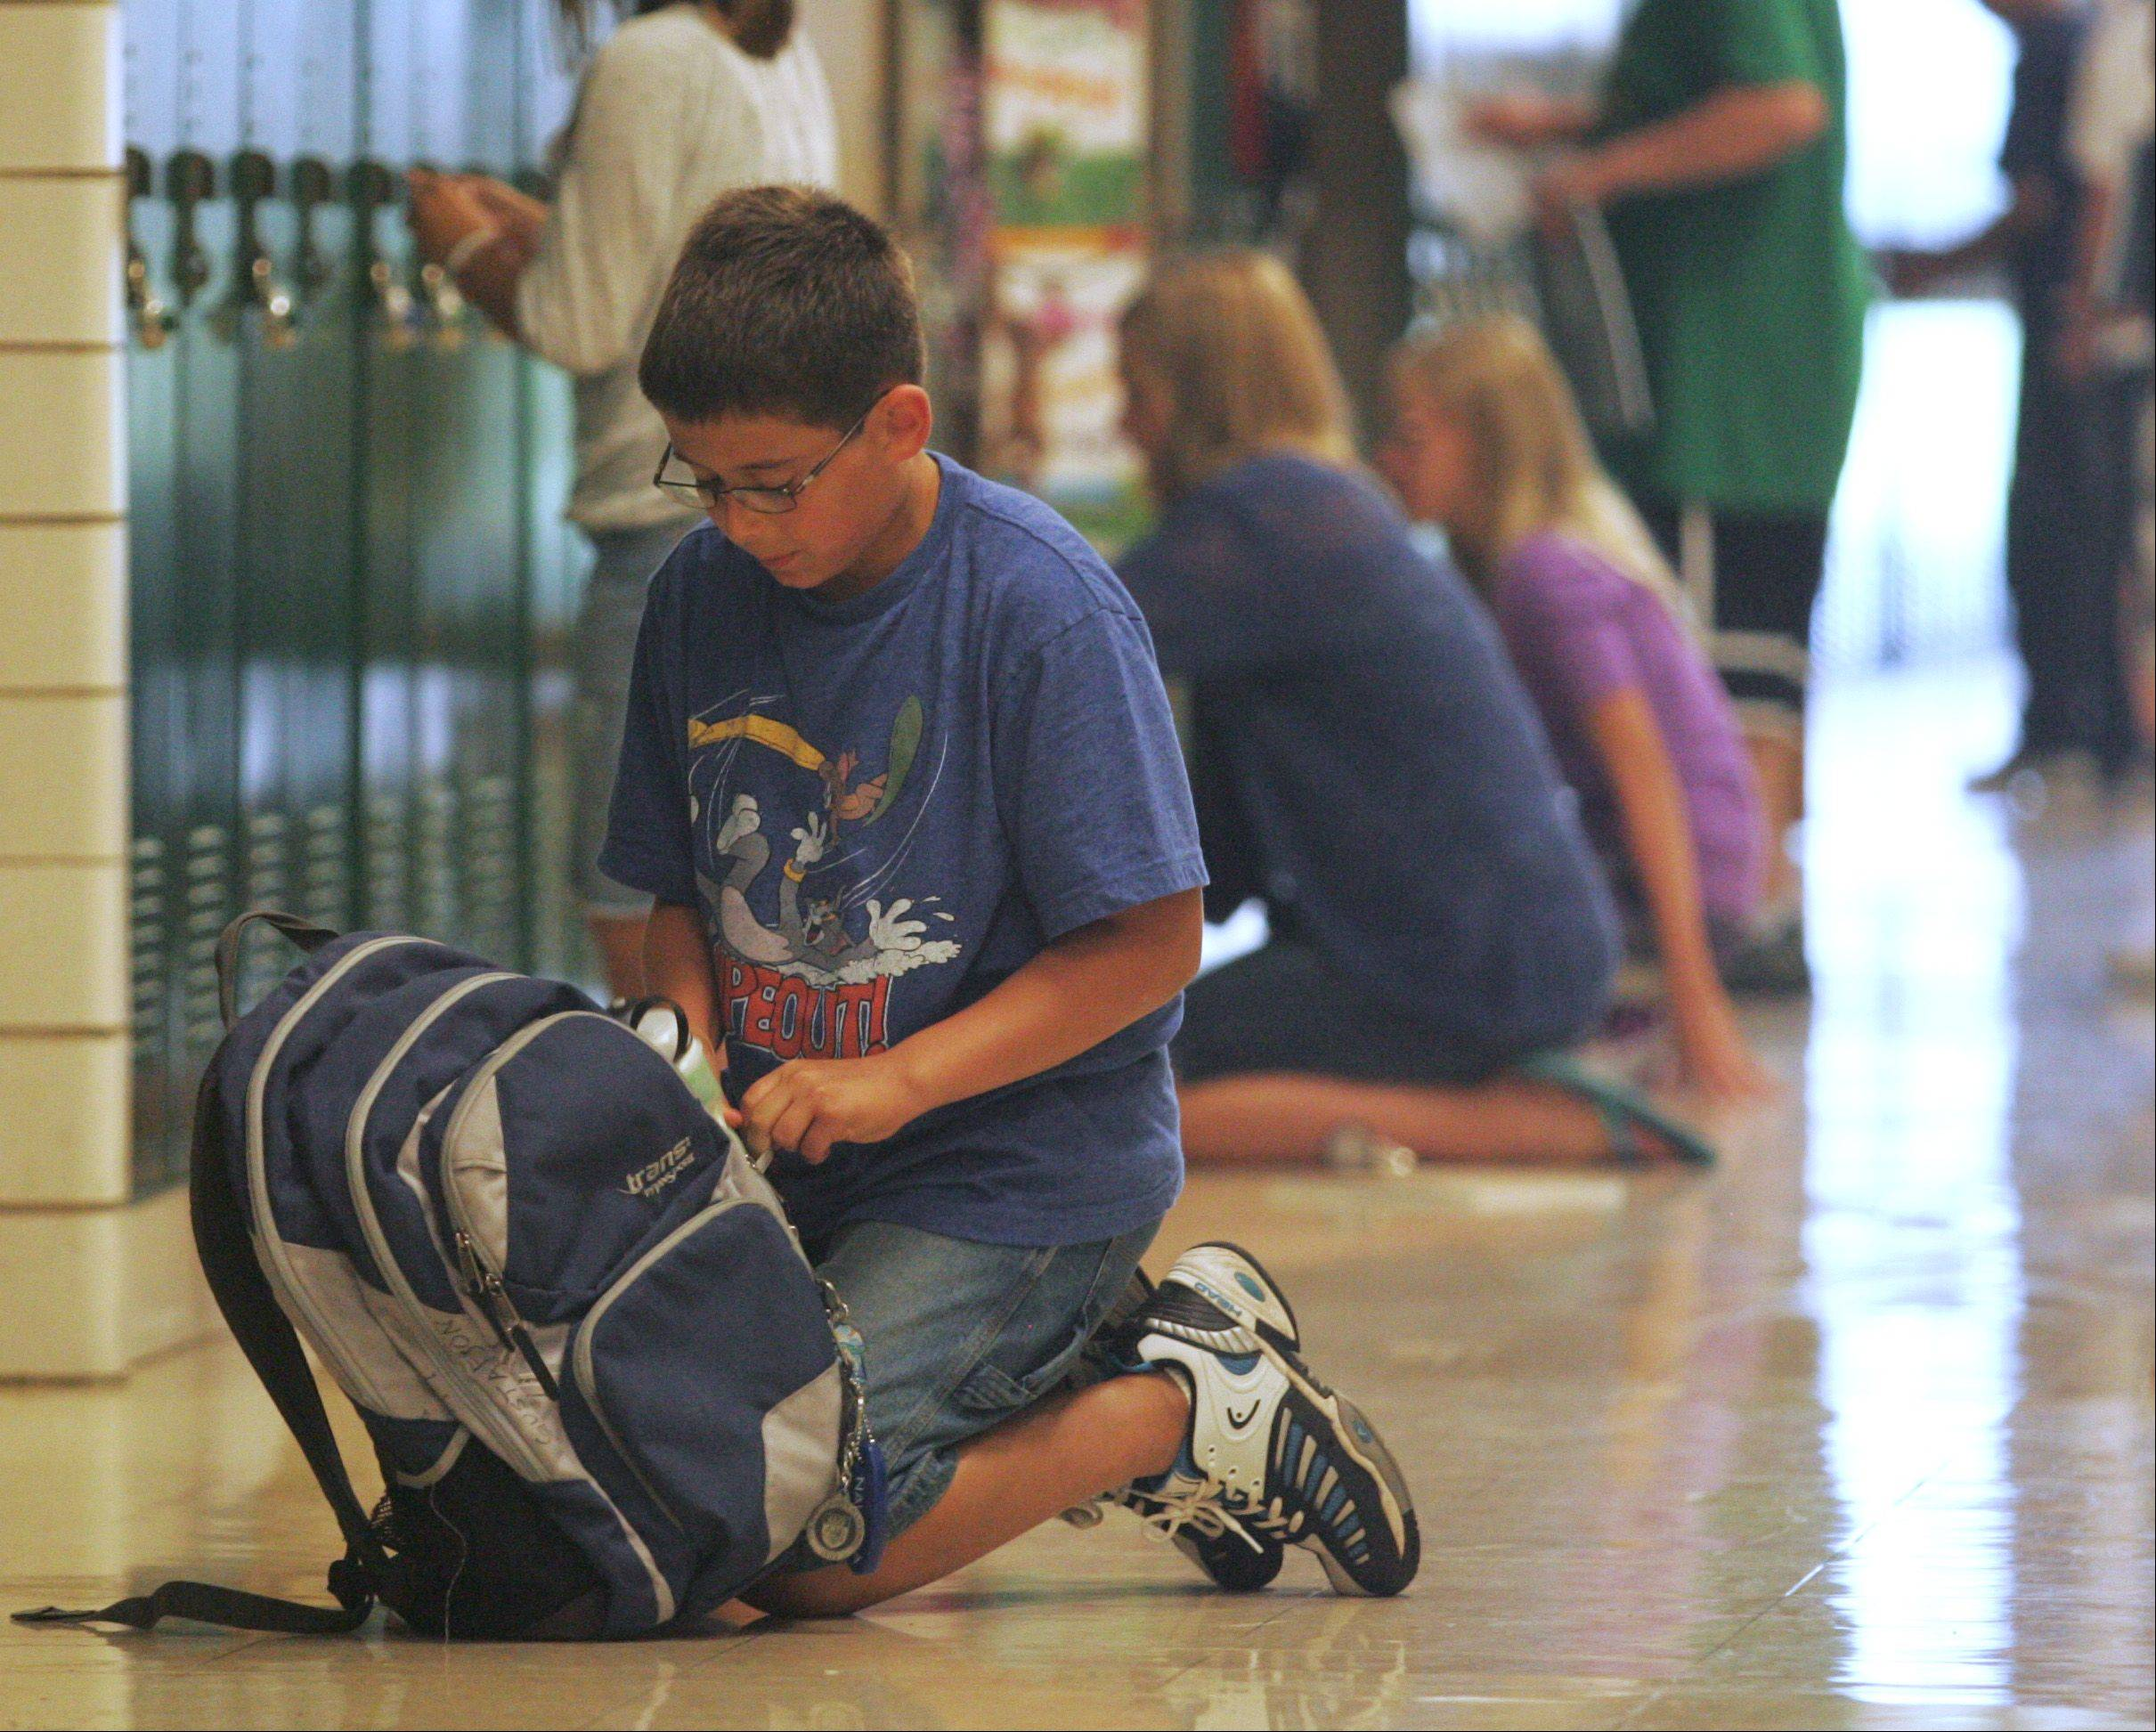 Sixth grader Ajay Gustafson puts some of his school supplies into his backpack between classes Wednesday morning at Haines Middle School in St. Charles.